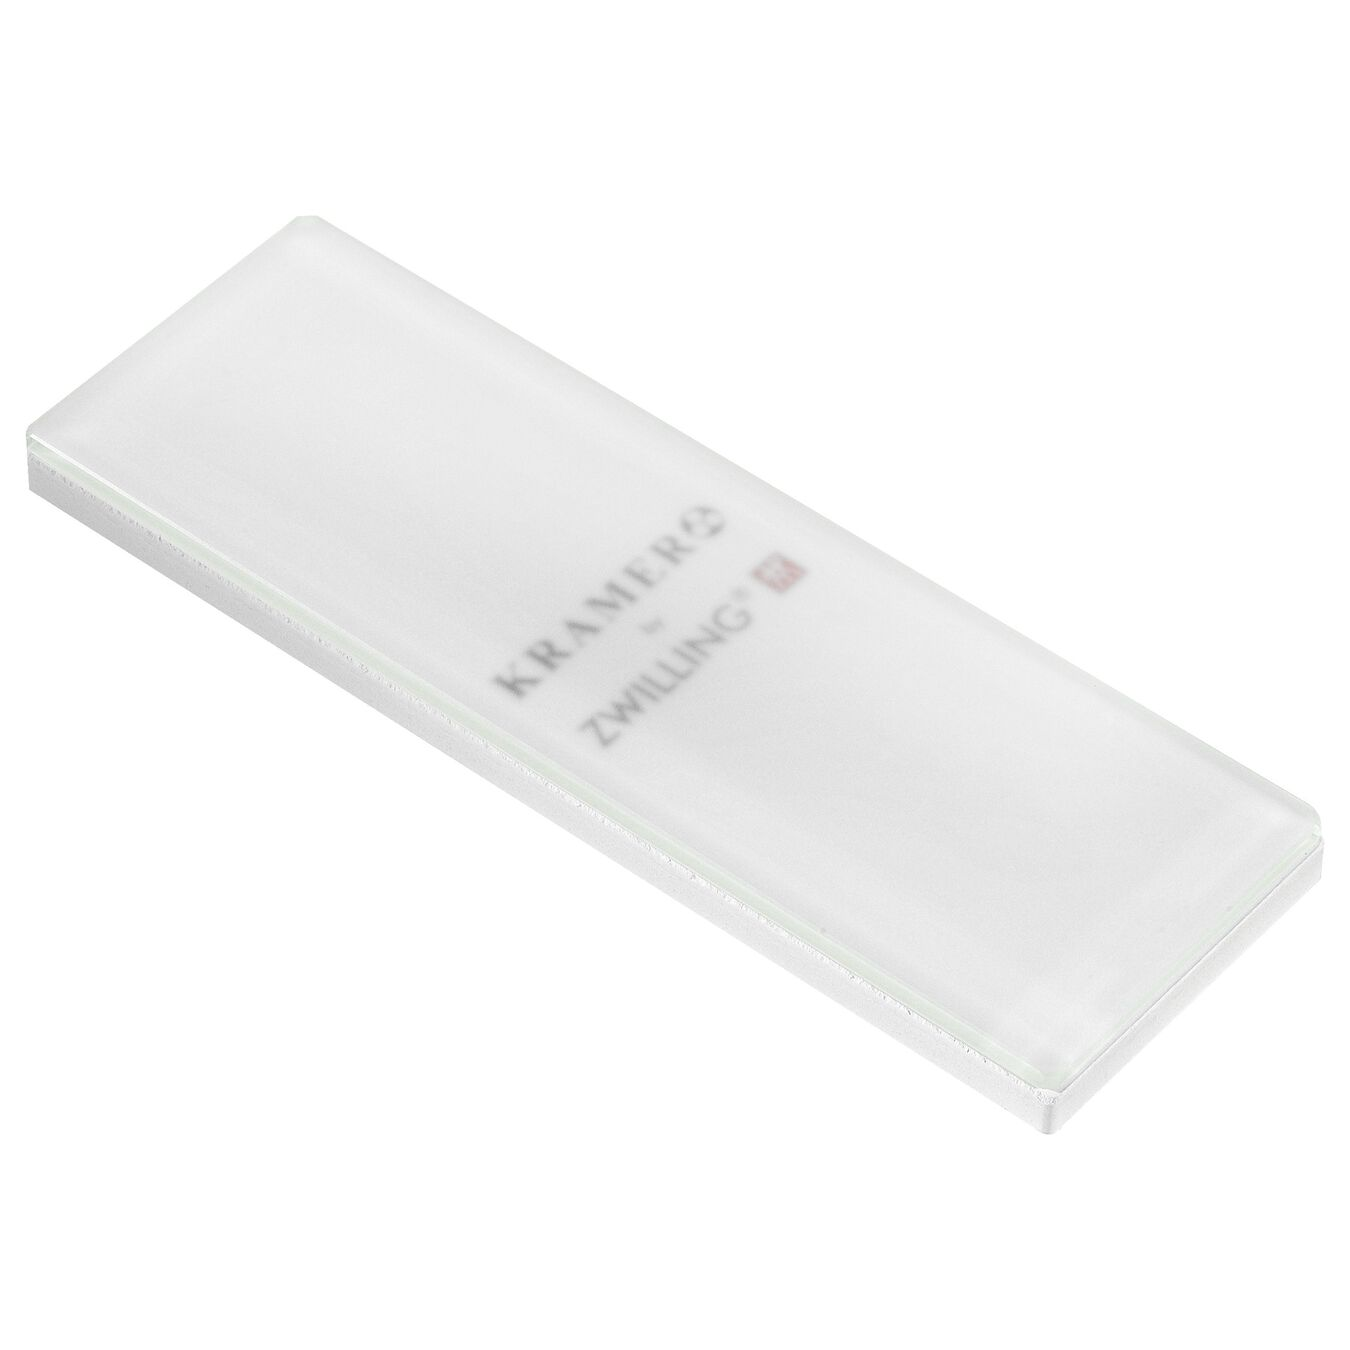 10000 Grit Glass Water Sharpening Stone,,large 2